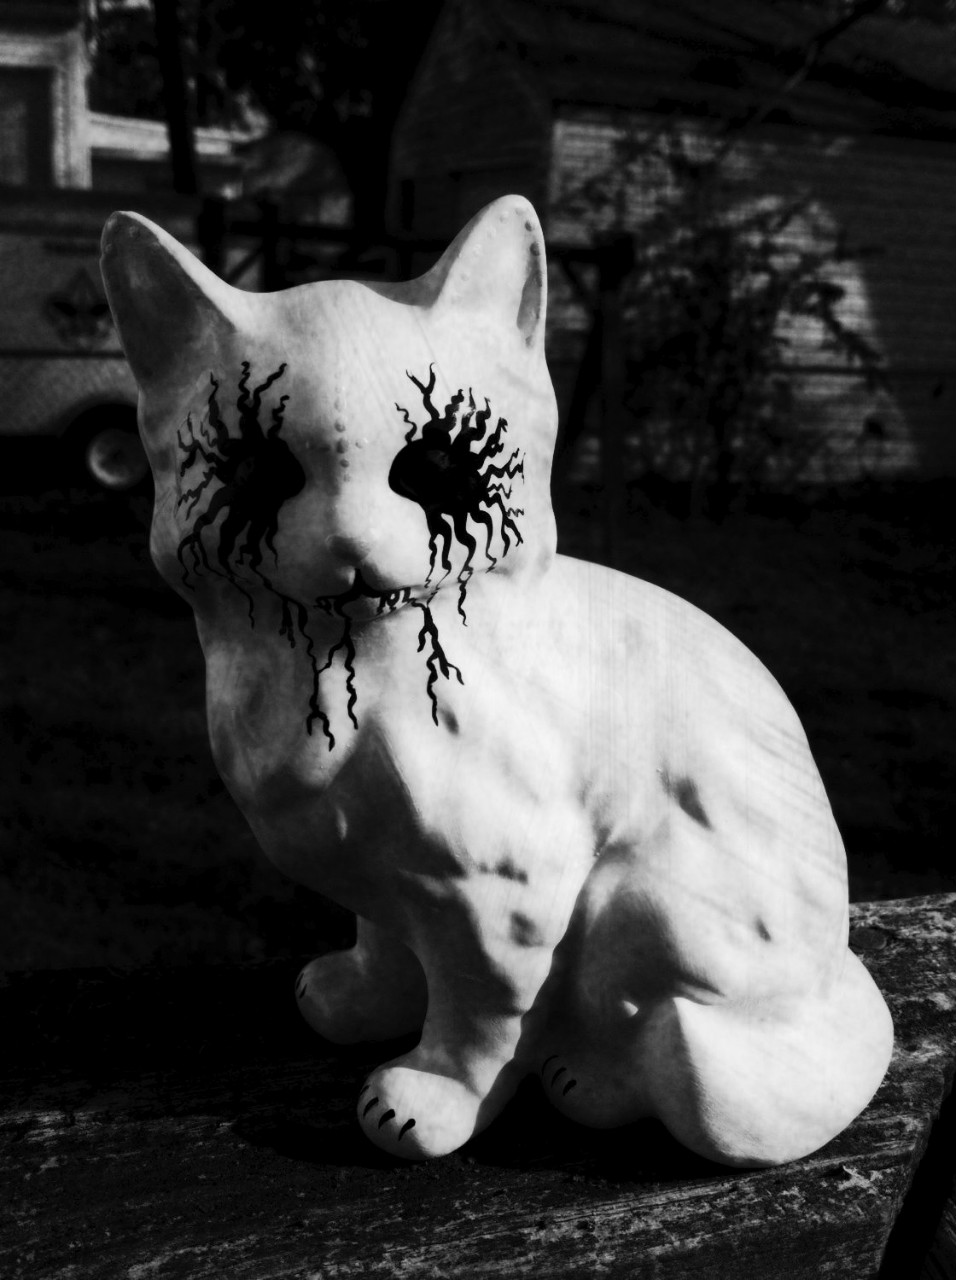 SCP-1913